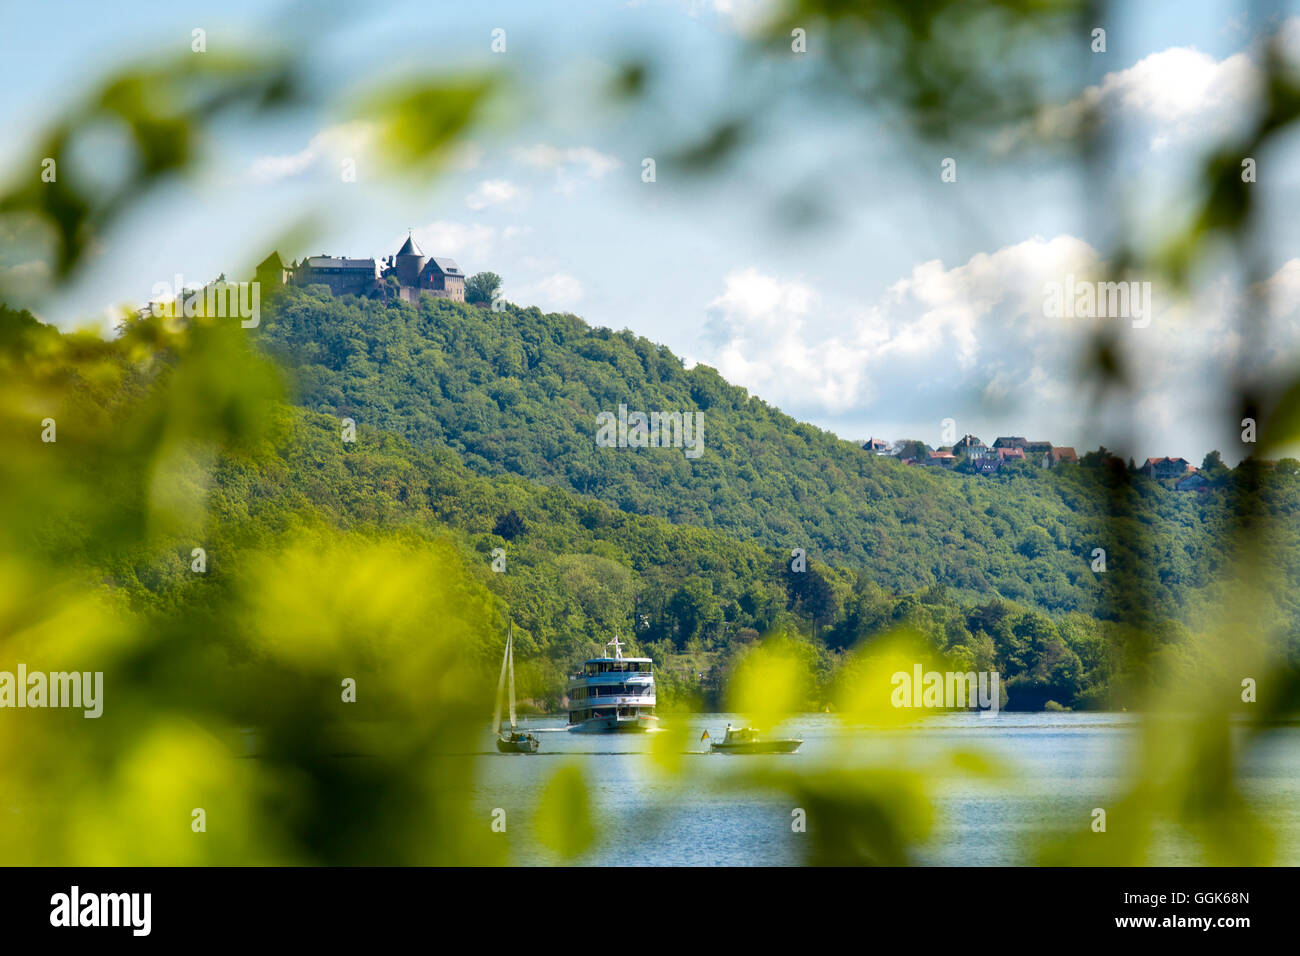 View through branches towards Waldeck Castle with excursion boat, Stern of Waldeck, on Lake Edersee in Kellerwald - Stock Image